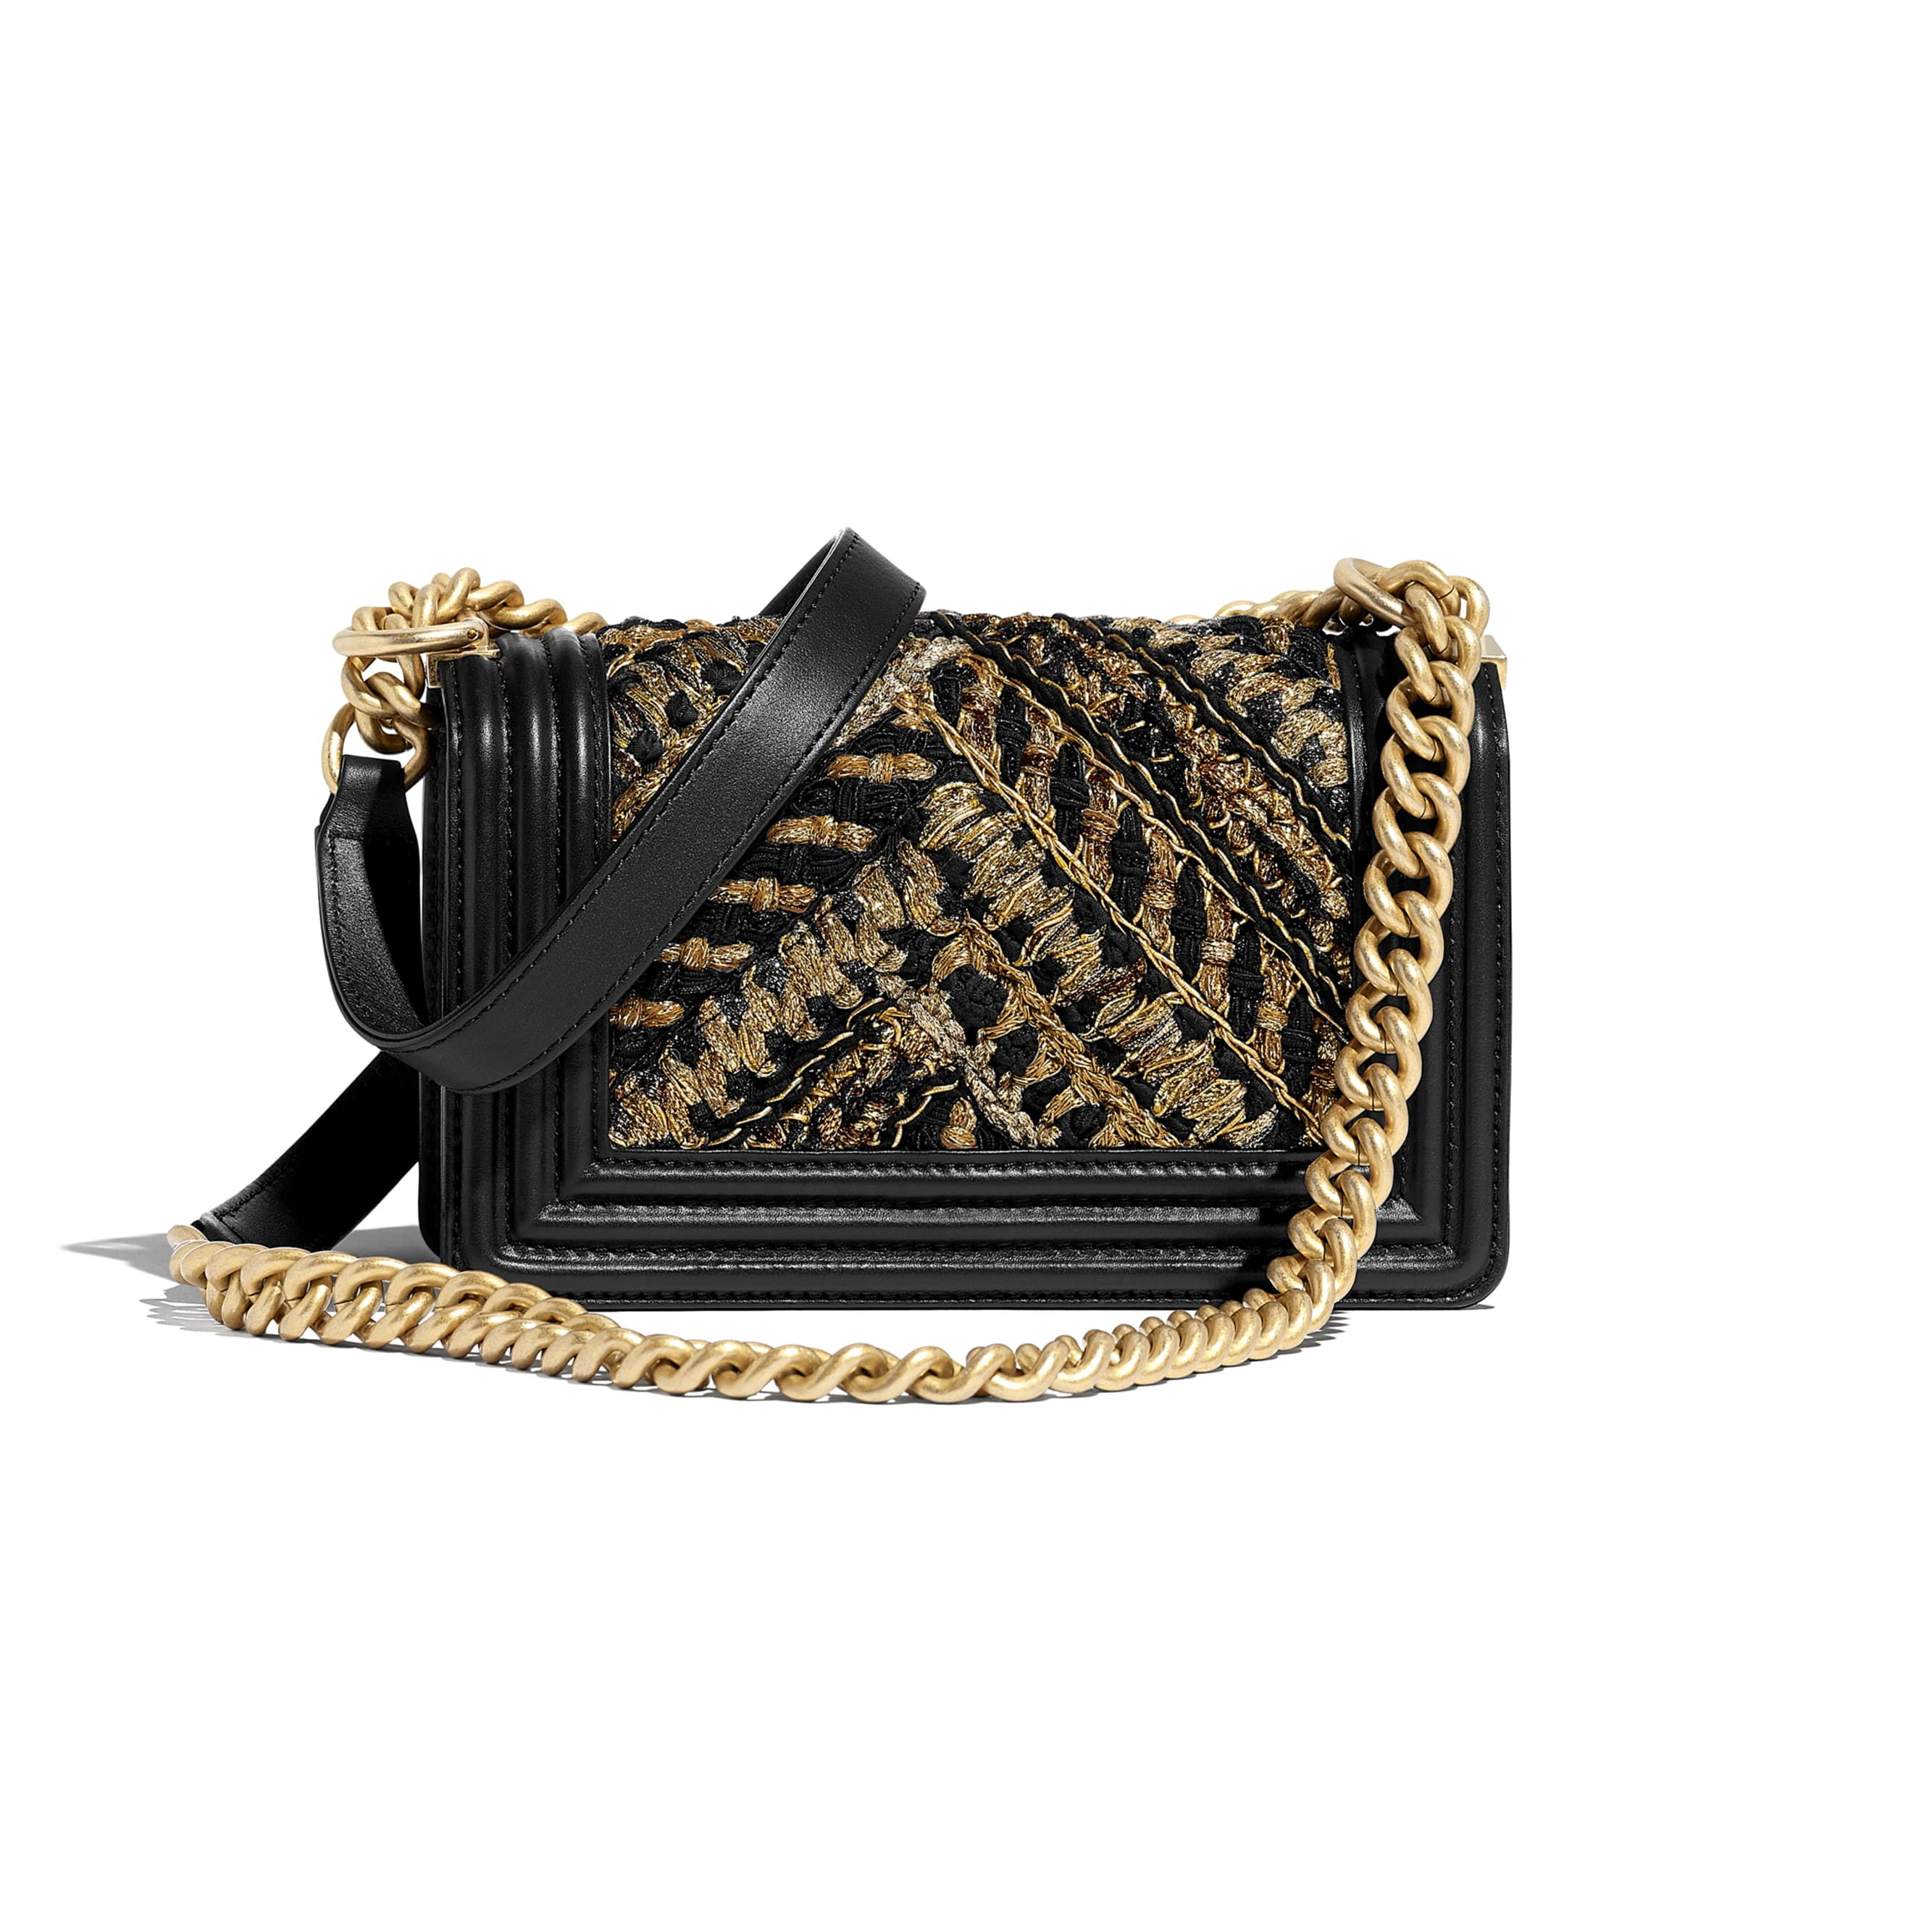 Small BOY CHANEL Handbag - Black & Gold - Calfskin, Cotton & Gold-Tone Metal - CHANEL - Alternative view - see standard sized version